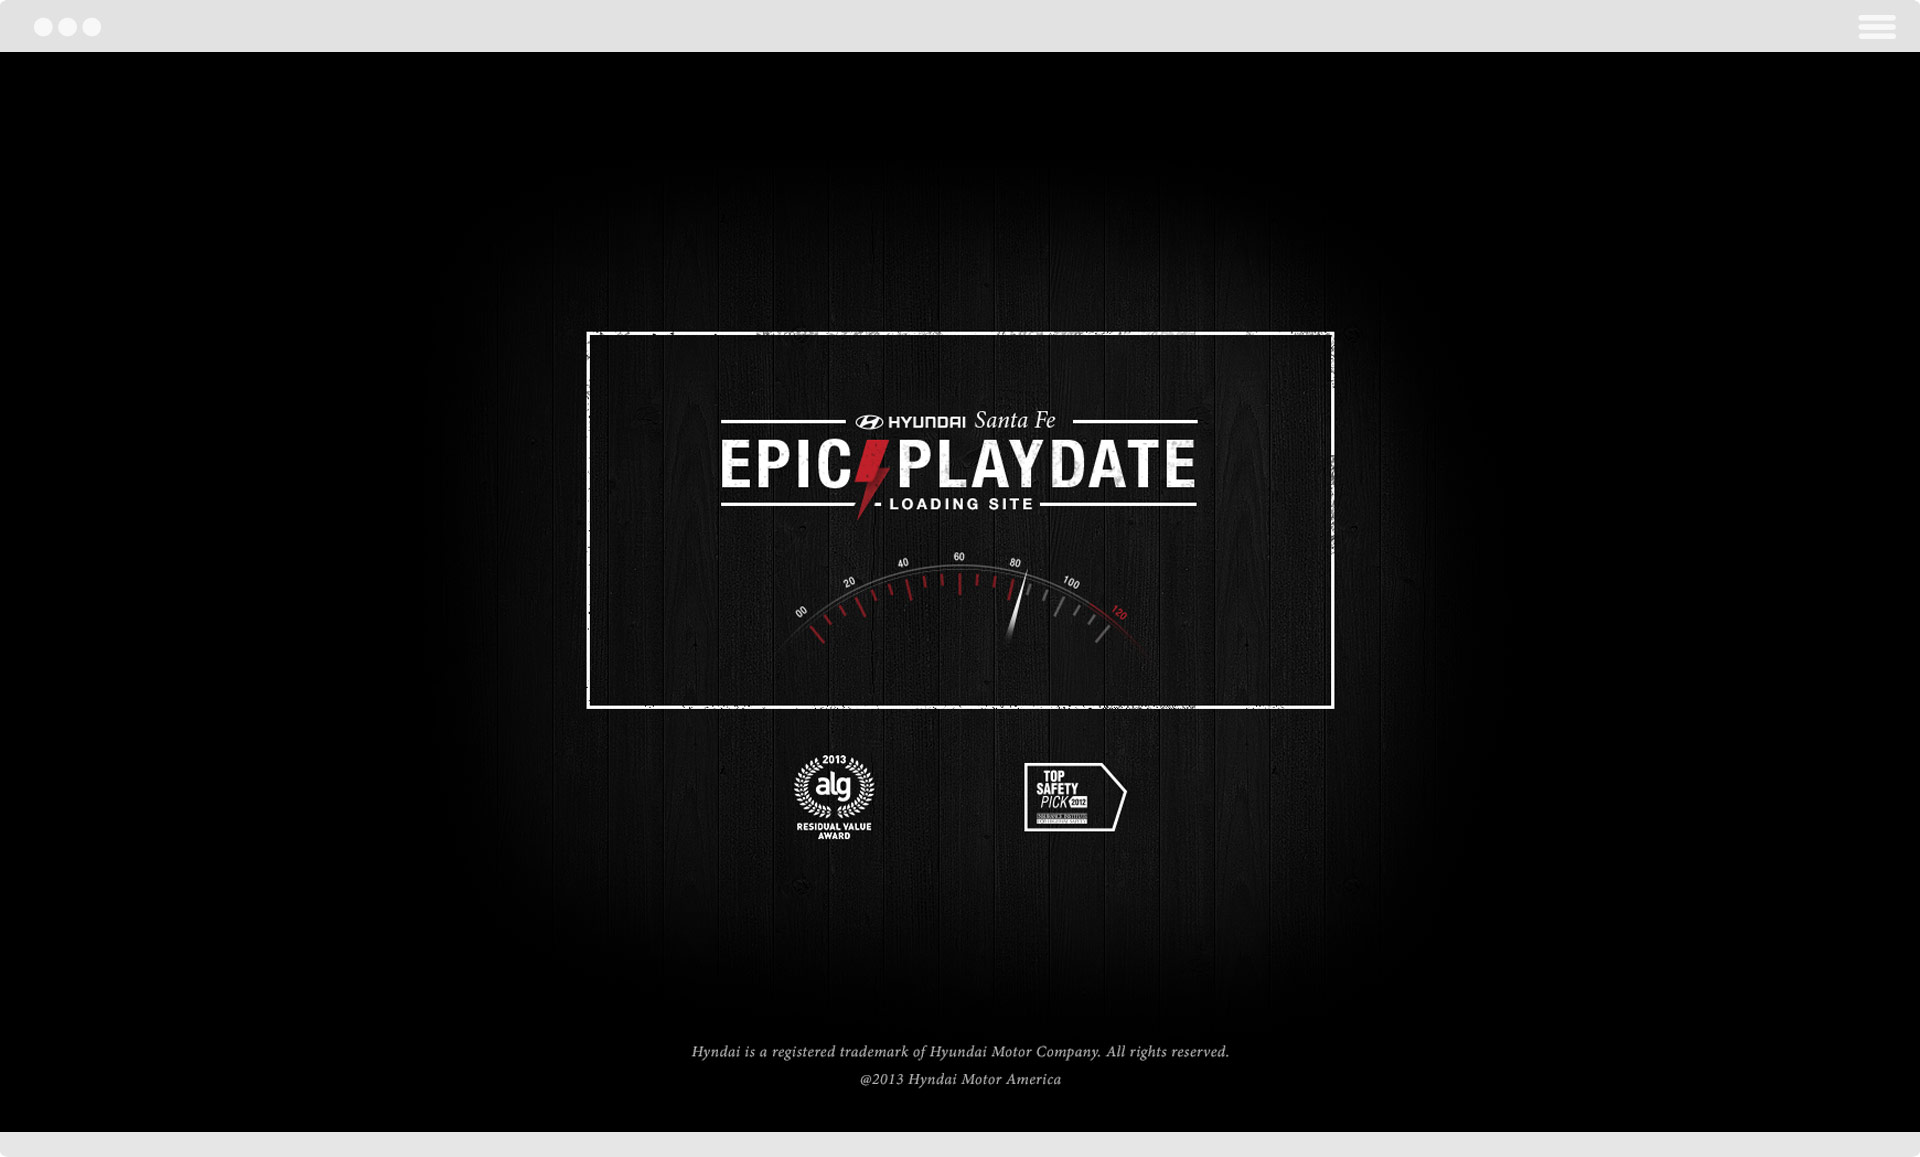 Hyundai Santa Fe Epic Playdate Loading